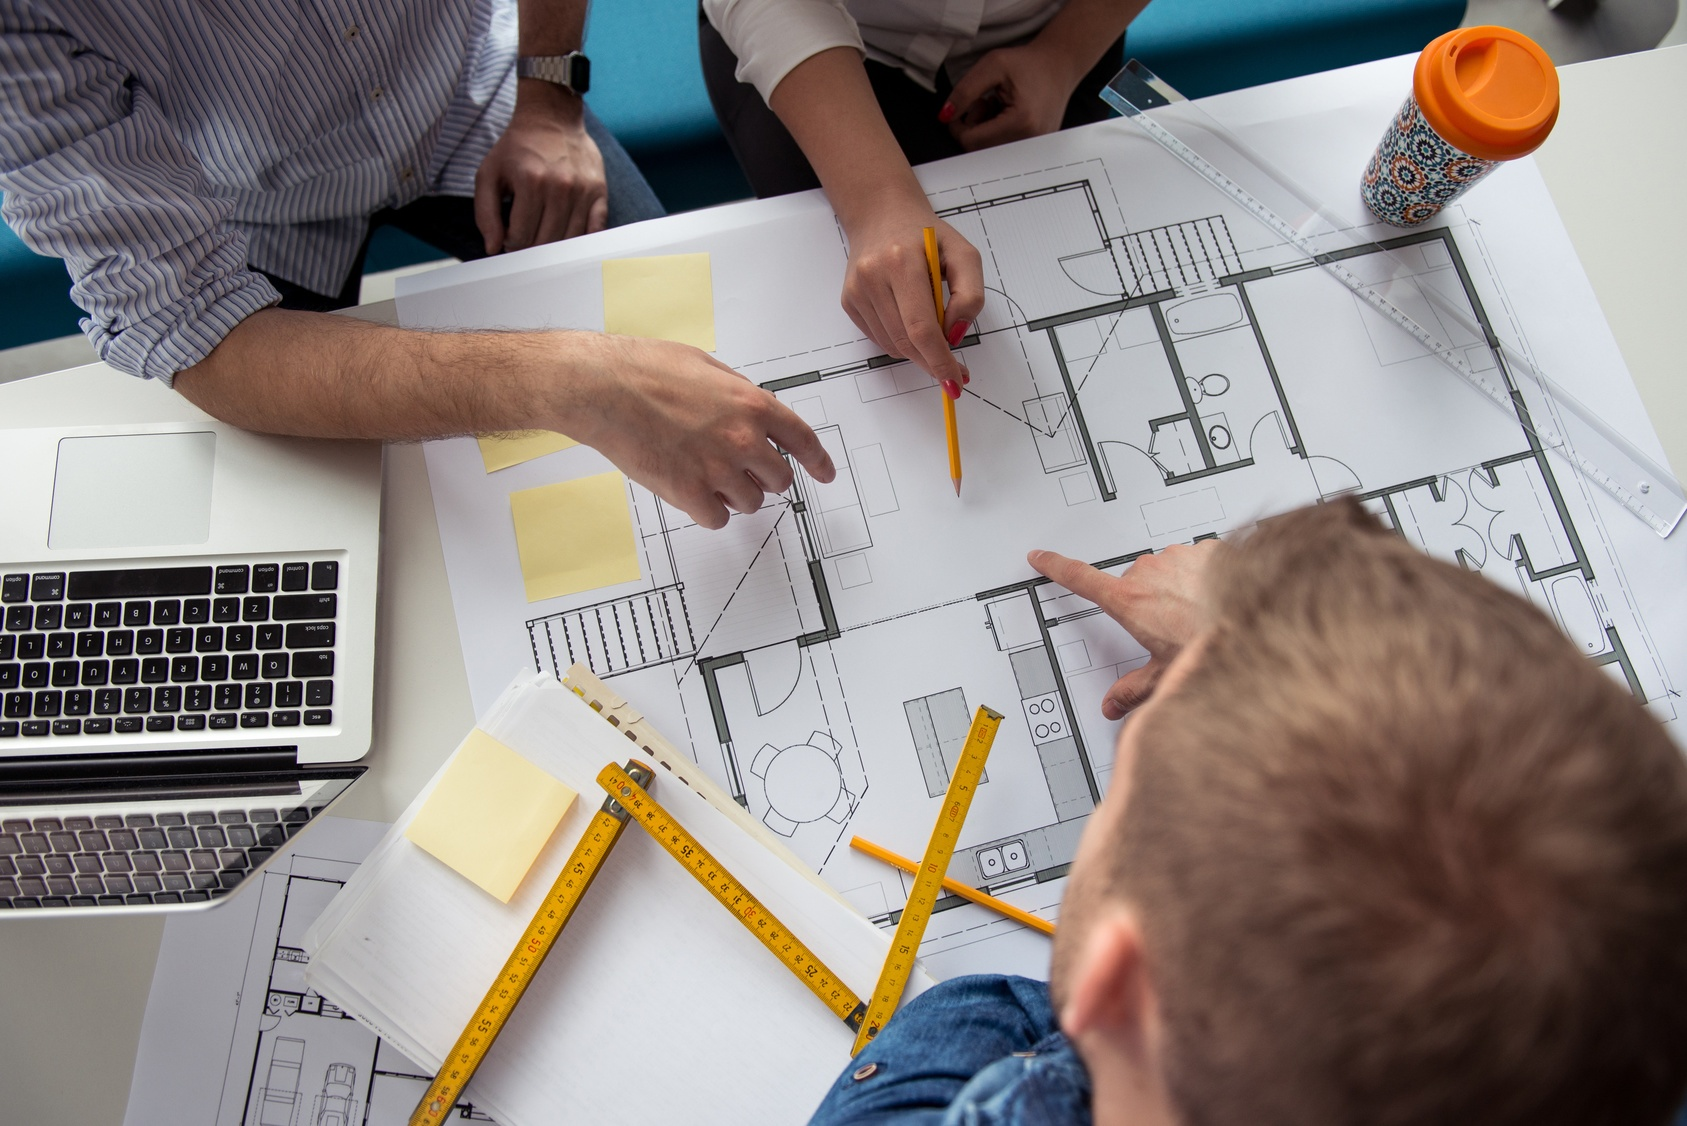 5 Things You Should Ask Your Local Architects